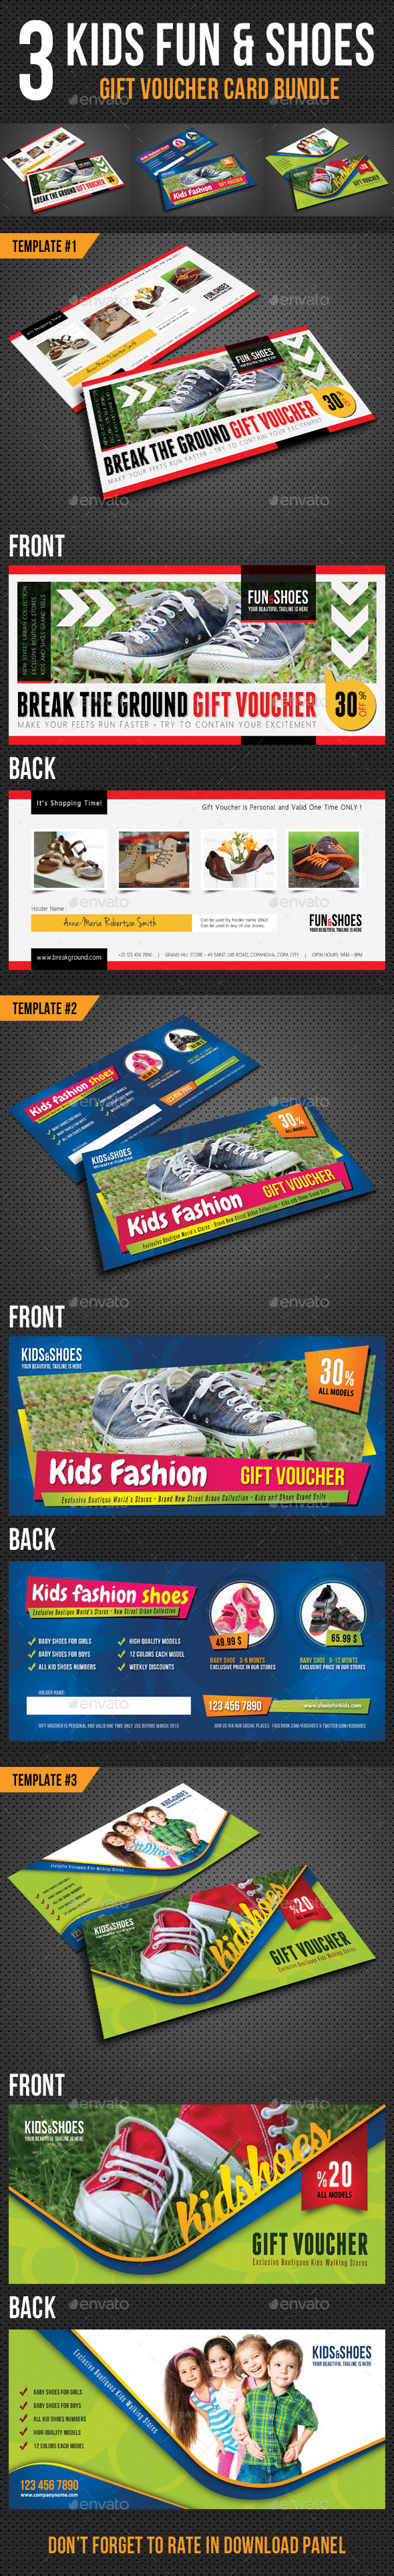 3 in 1 Kids Fun and Shoes Gift Voucher Bundle - Cards & Invites Print Templates